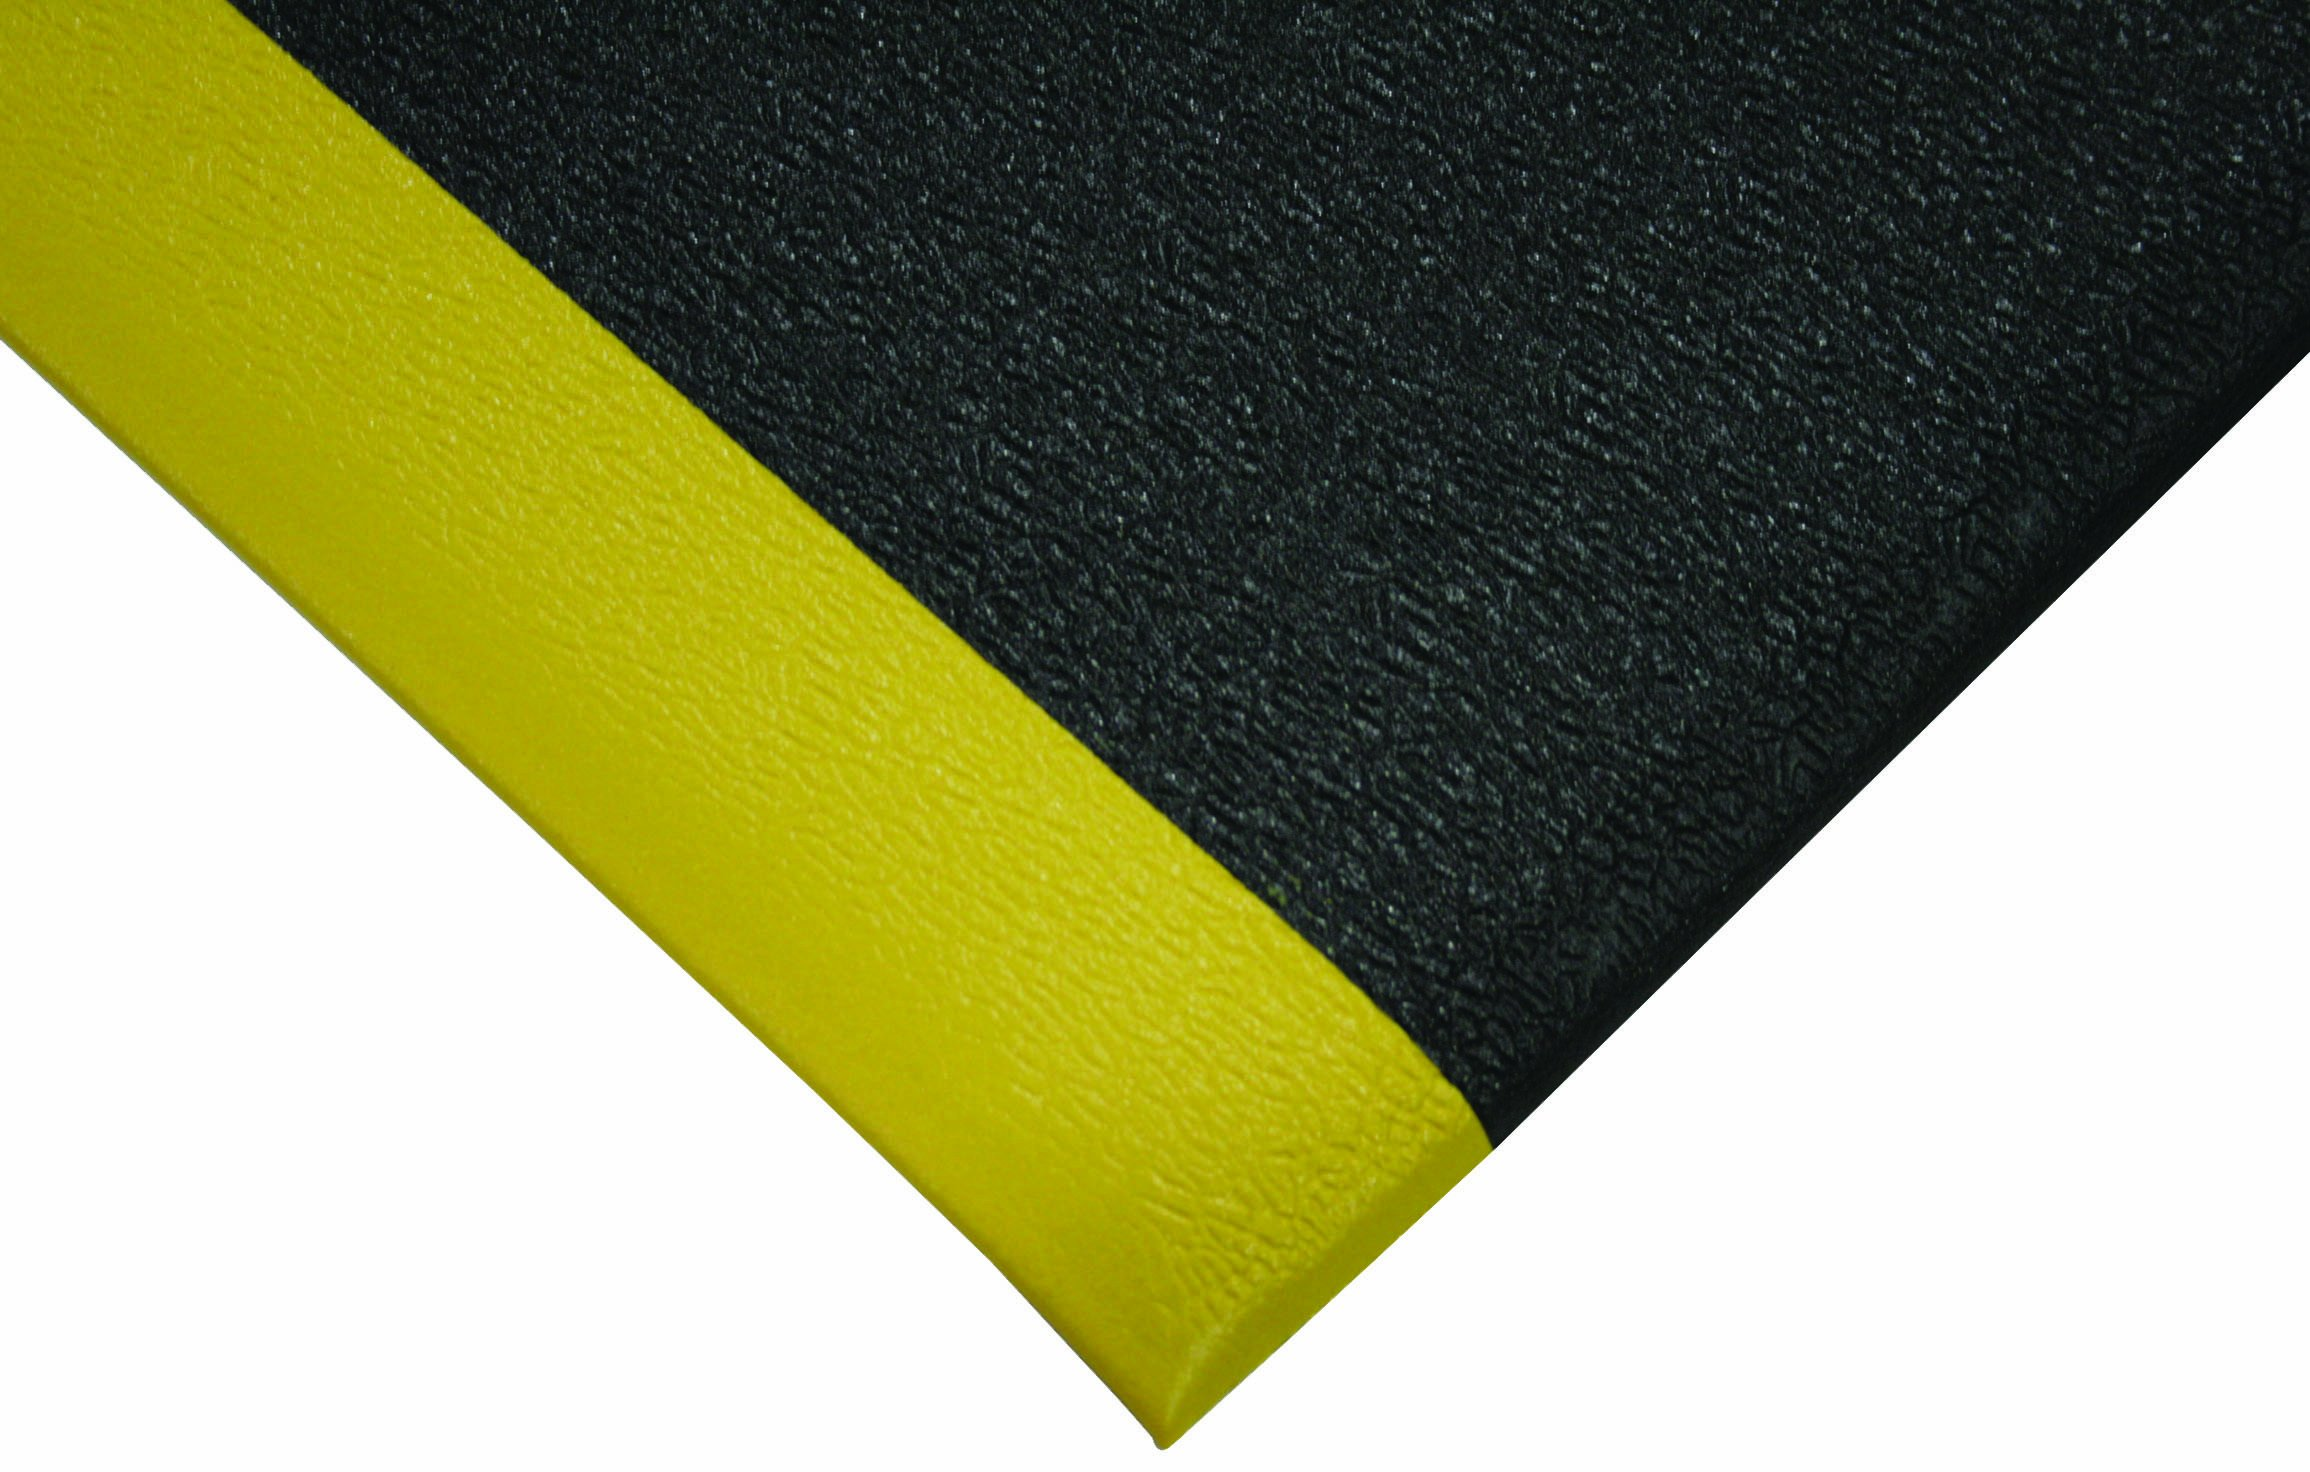 Wearwell PVC 440 UltraTred ArmorCote Light Duty Anti-Fatigue Mat, for Dry Areas, 3' Width x 5' Length x 3/8'' Thickness, Black / Yellow